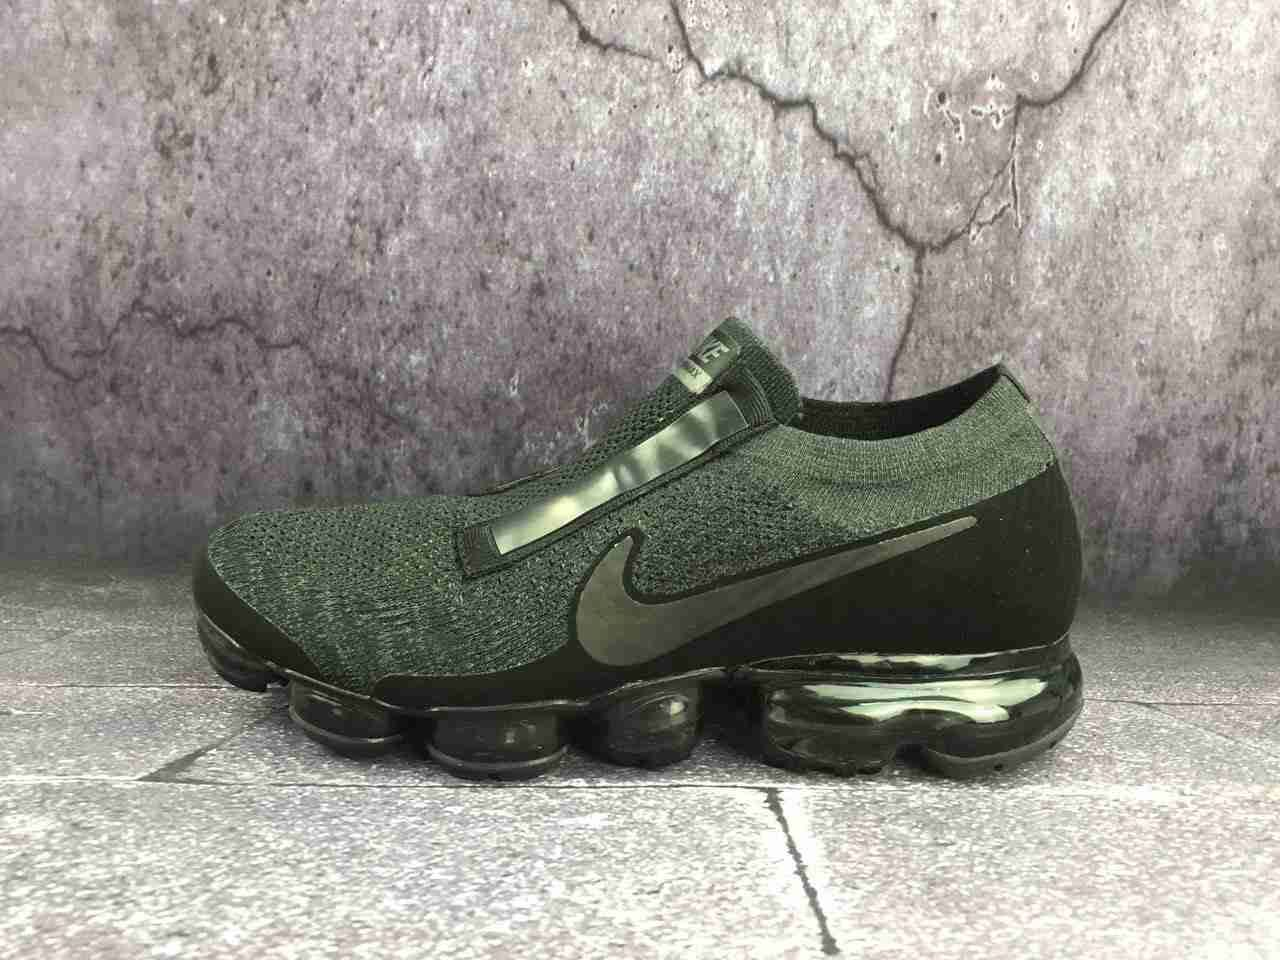 eb5a9d7174 Nike Air VaporMax 2018 Flyknit COG OW Dark Green Men Shoes. Find this Pin  and more on Nike Air Max ...